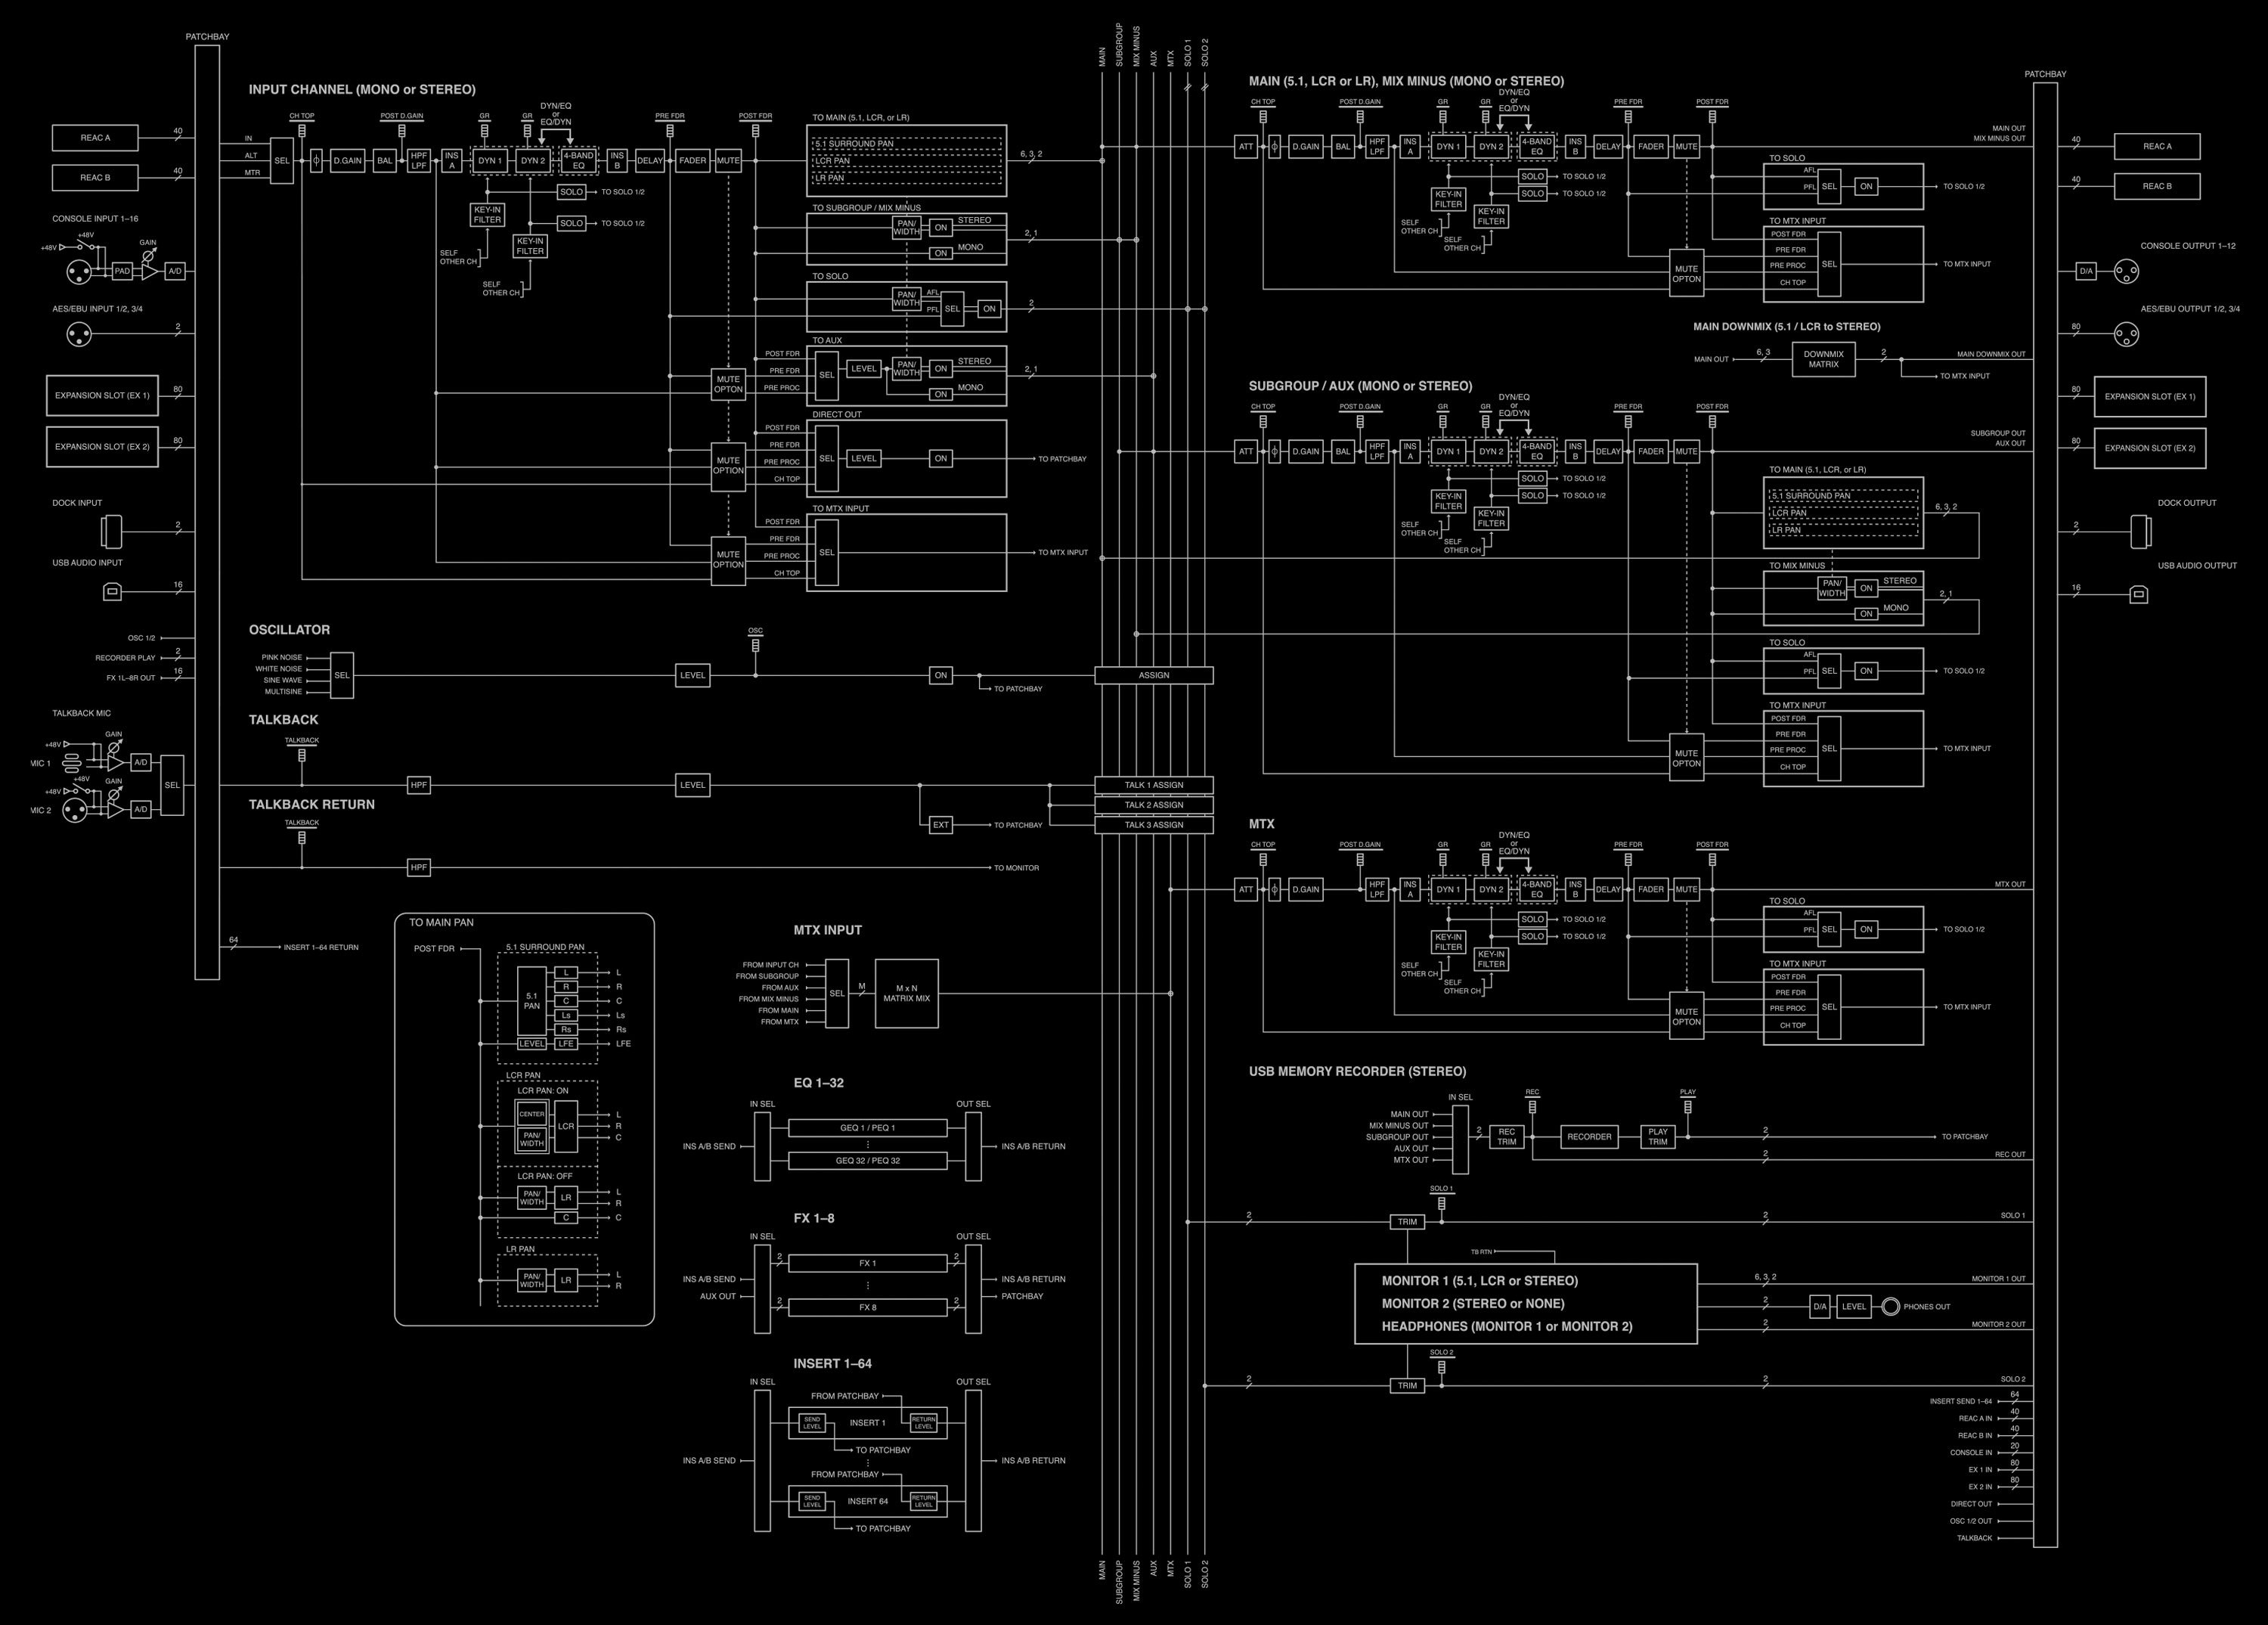 M-5000 Mixer Block Diagram